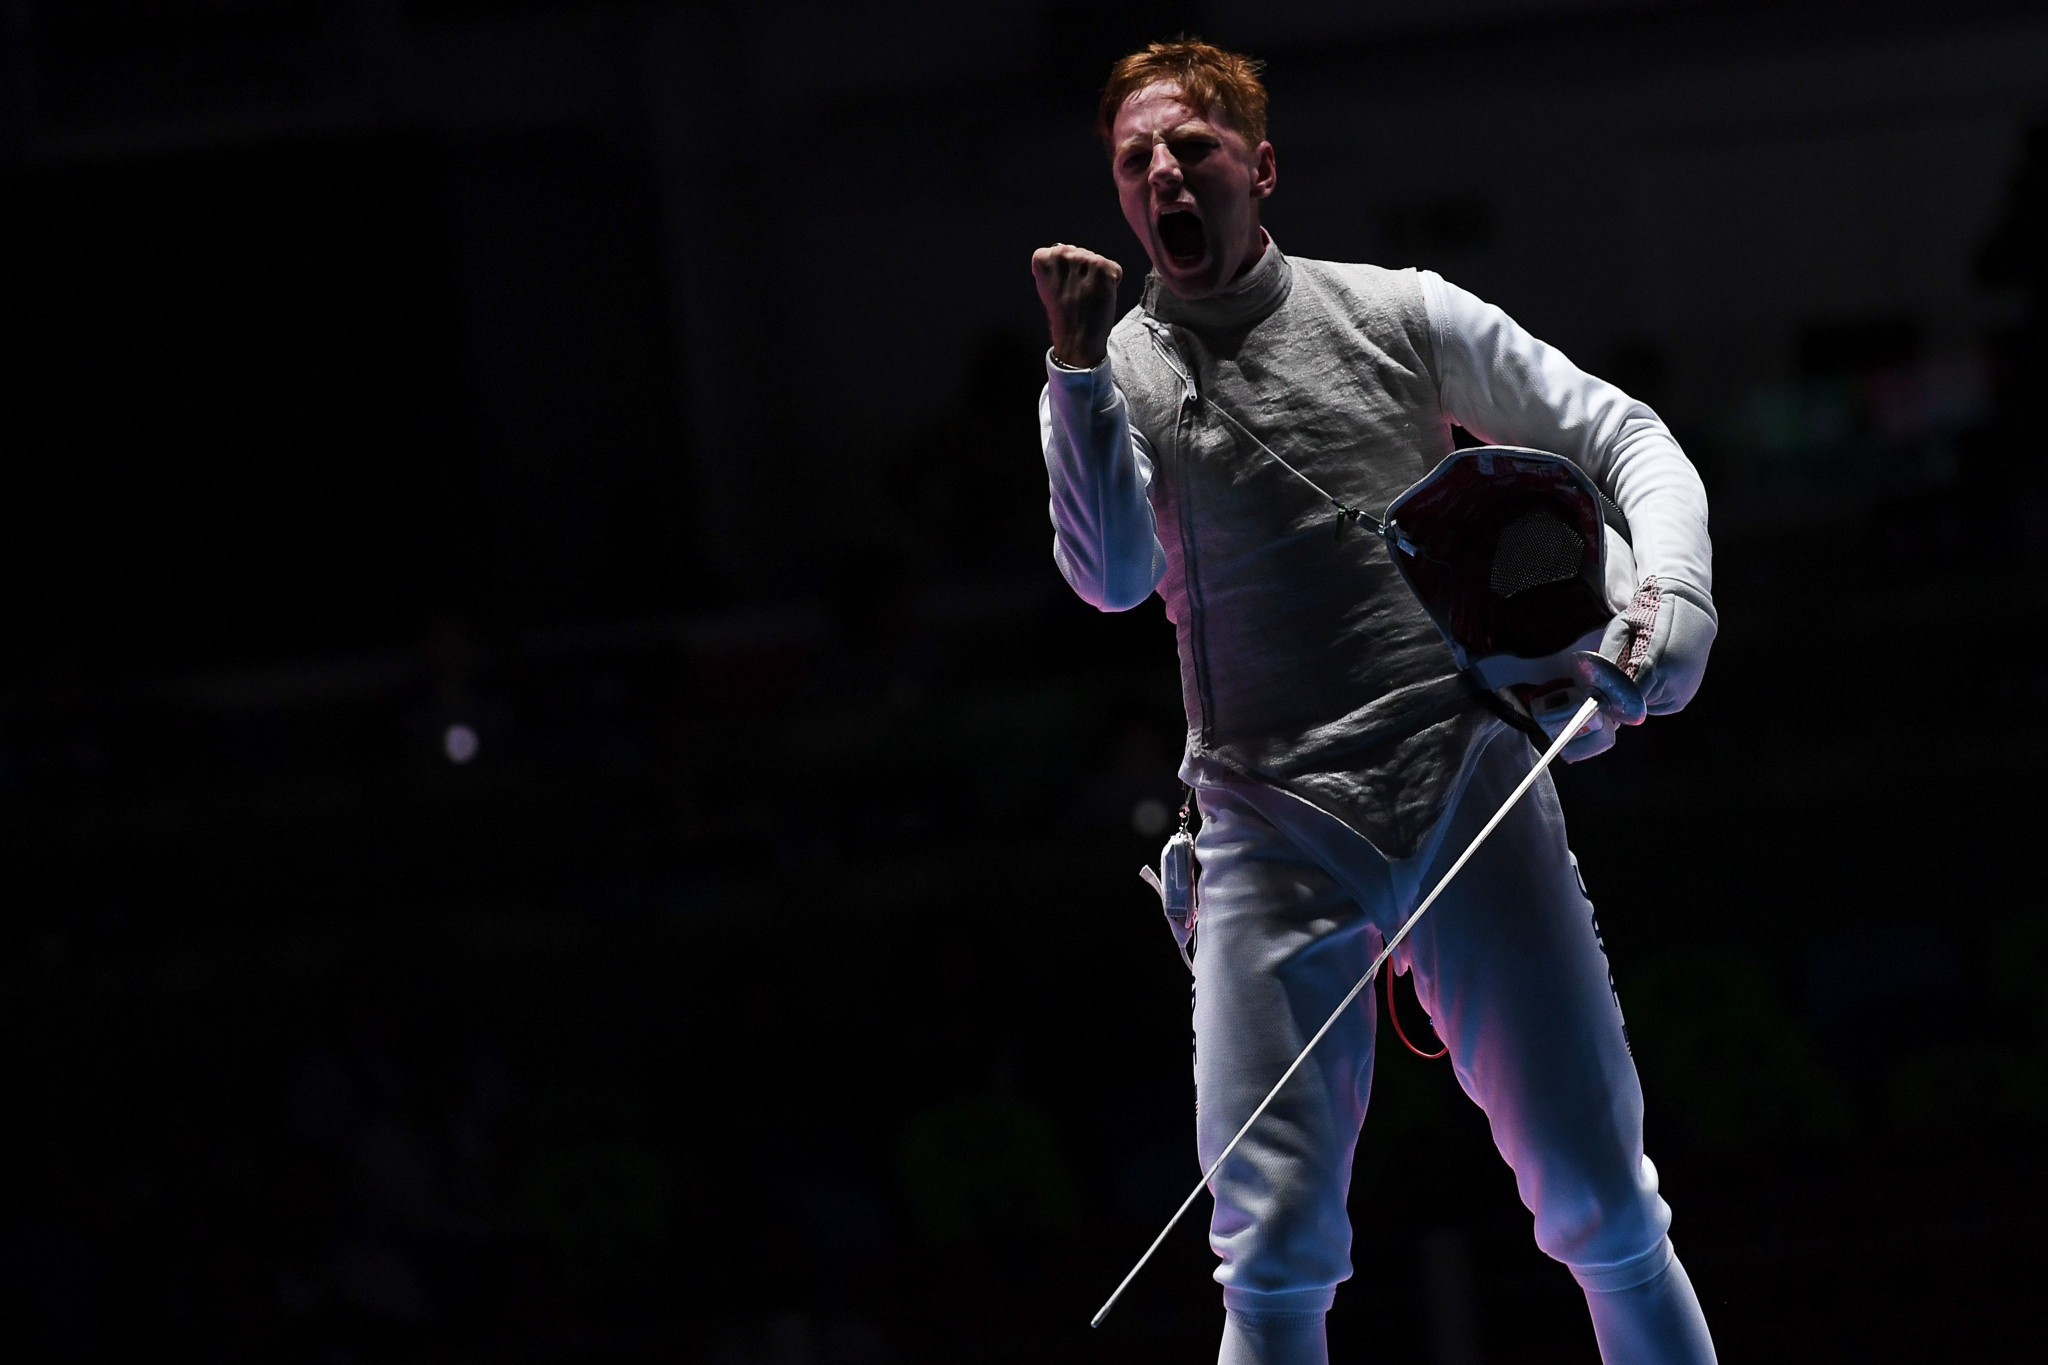 Race Imboden secured victory in the men's foil competition ©Getty Images